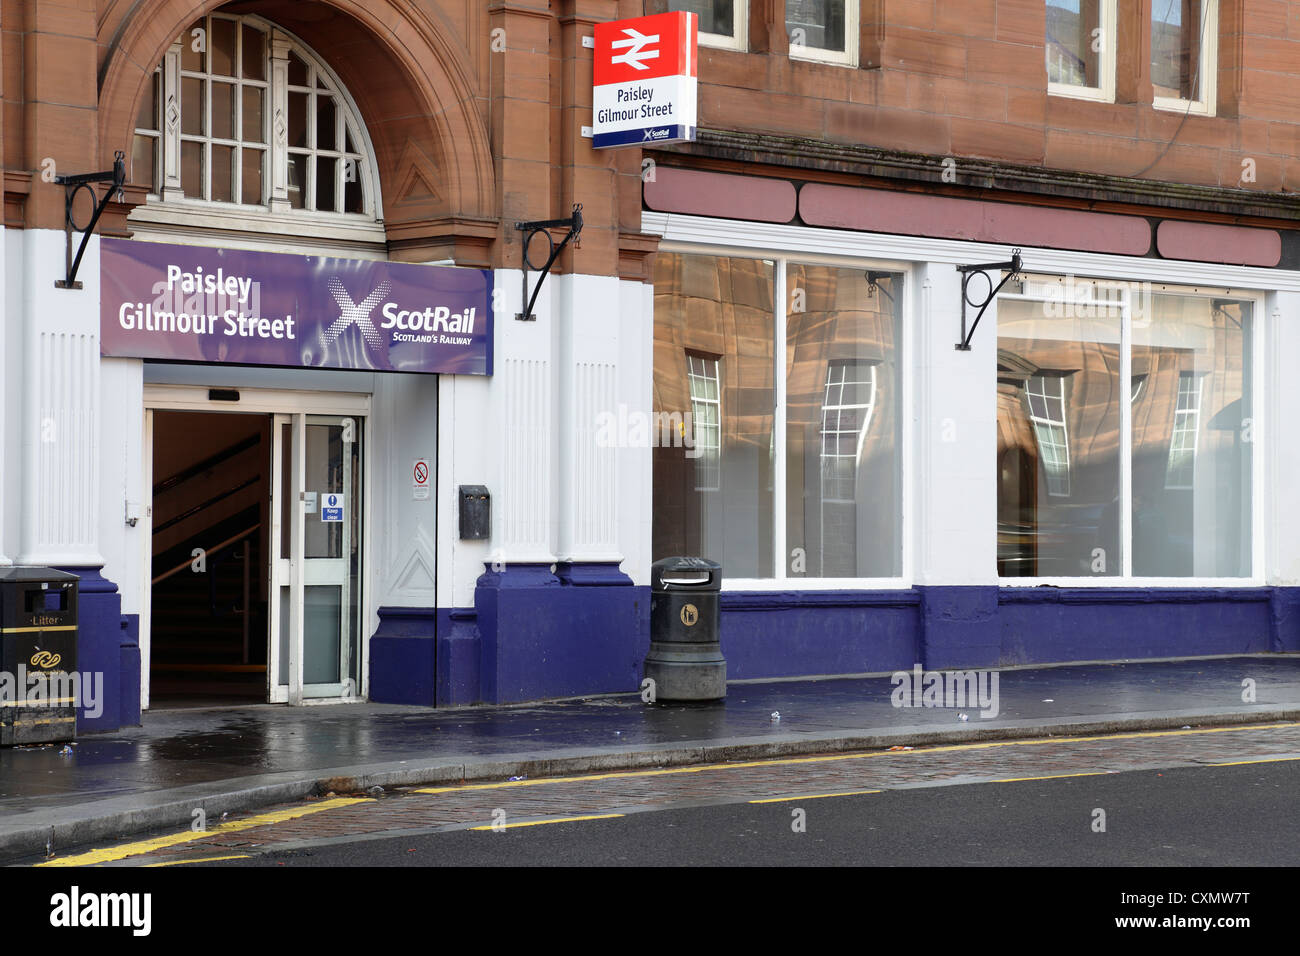 Entrance to and exit from Paisley Gilmour Street Train Station, Old Sneddon Street, Paisley town centre Renfrewshire - Stock Image